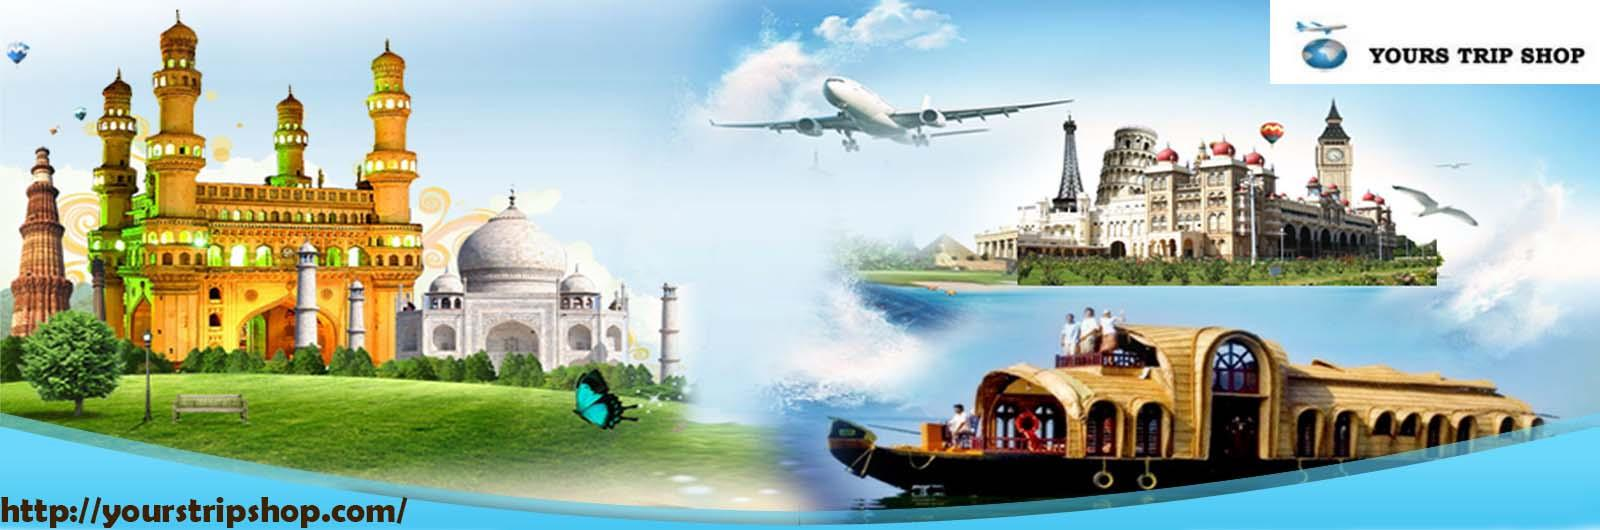 #Cheap Travel Packages #Cheap holiday Packages #Singapore Malaysia Packages #Cheap Tour Packages to Thailand  Holiday Packages in Singapore, Malaysia and Thailand with exclusive deals. Yours Trip Shop provide best Travel Packages, Holiday P - by YoursTripShop, Punjab